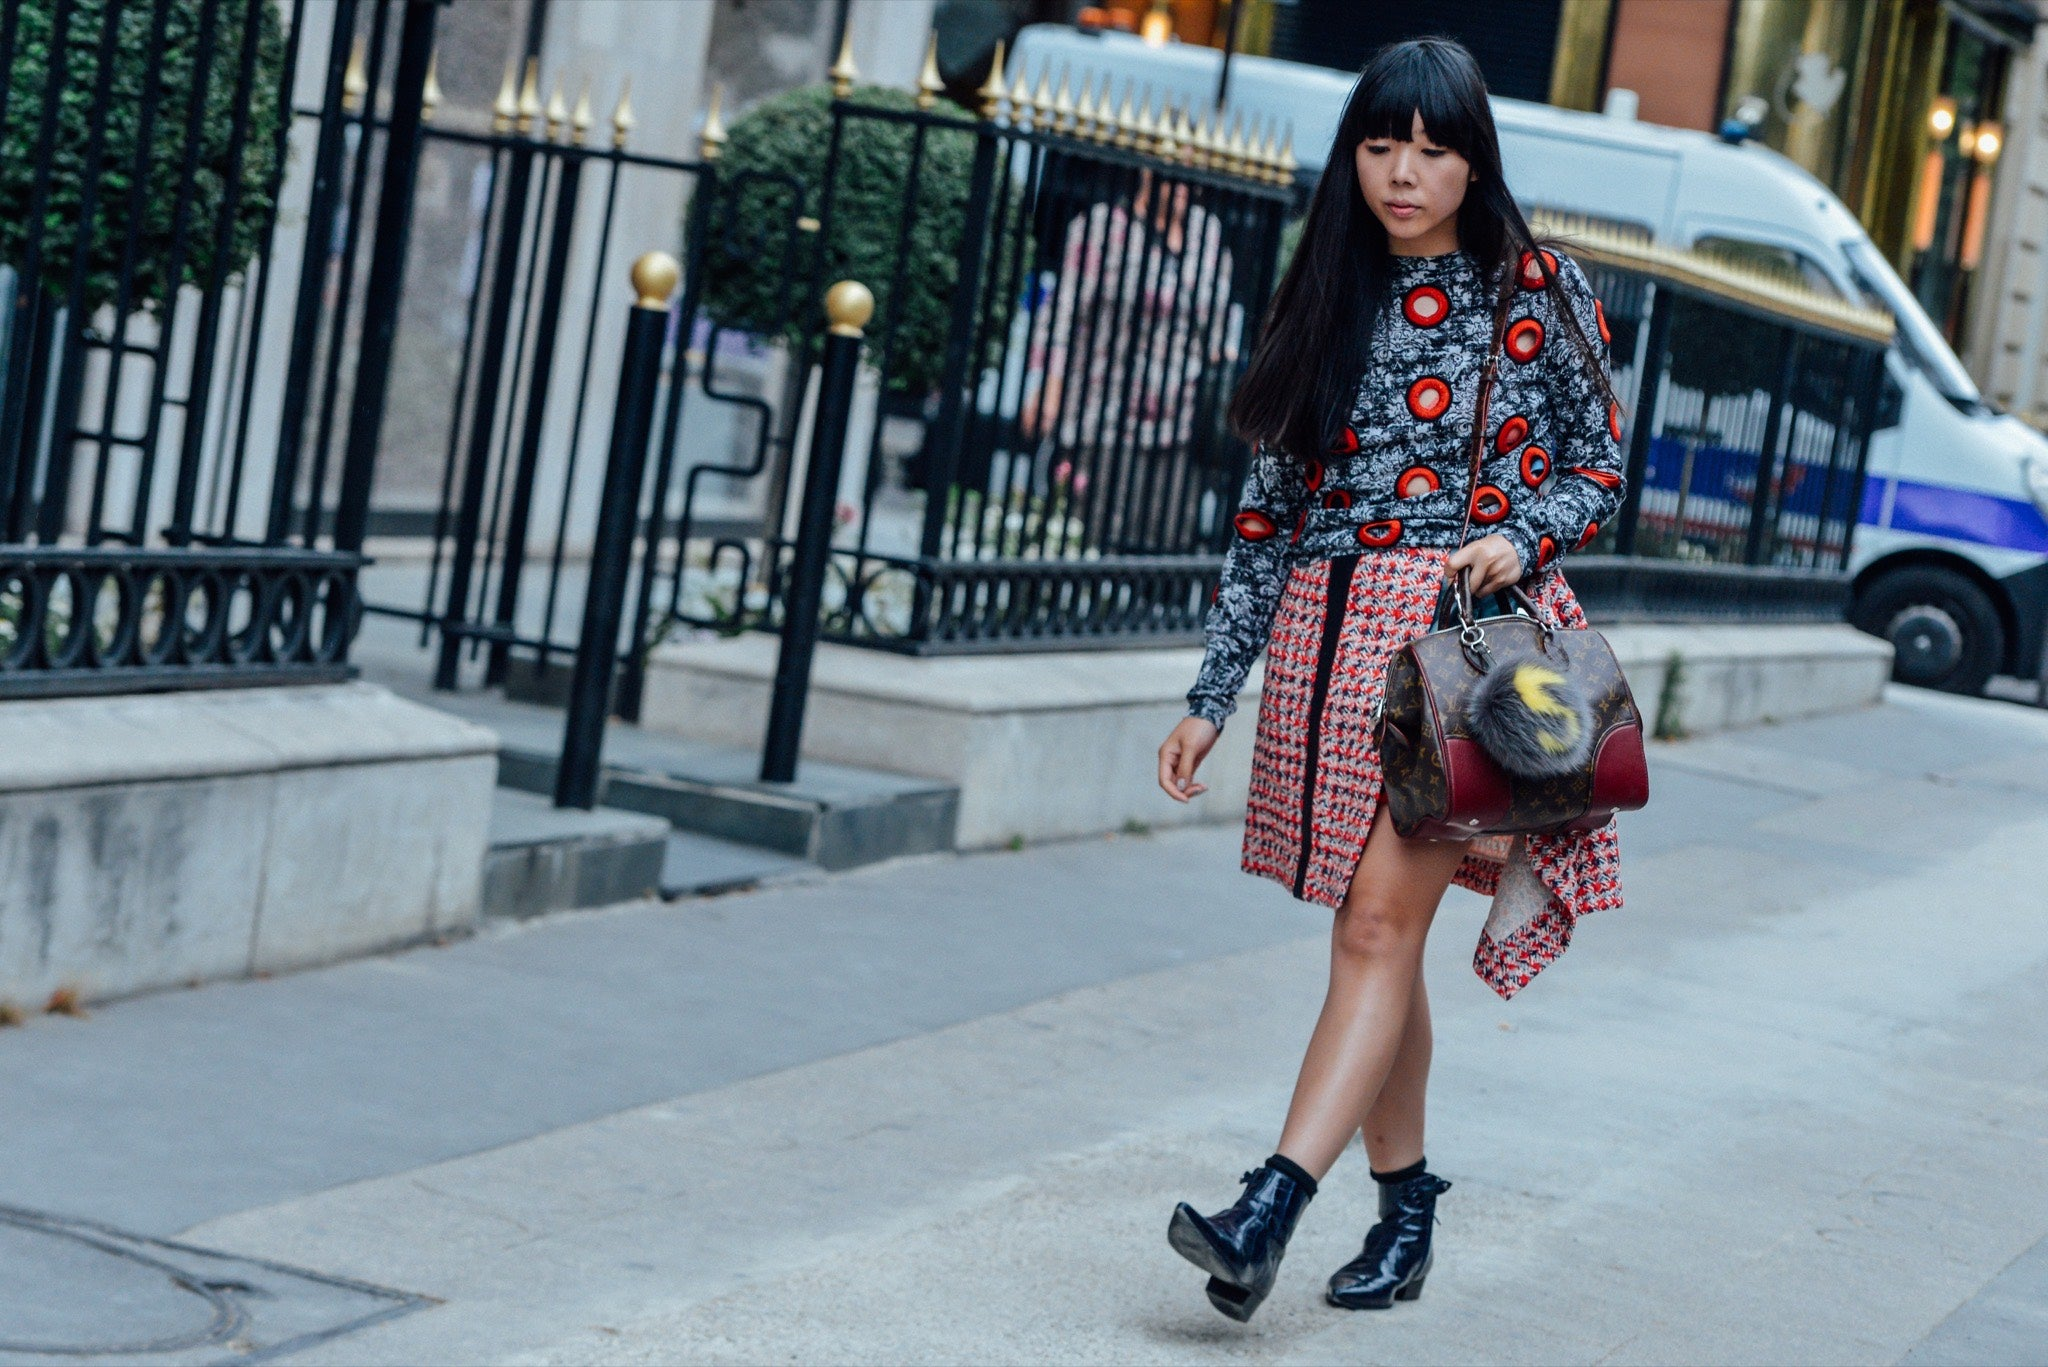 Street Style - Fall Couture 2015 - Me Mata Baires - MeMataBaires